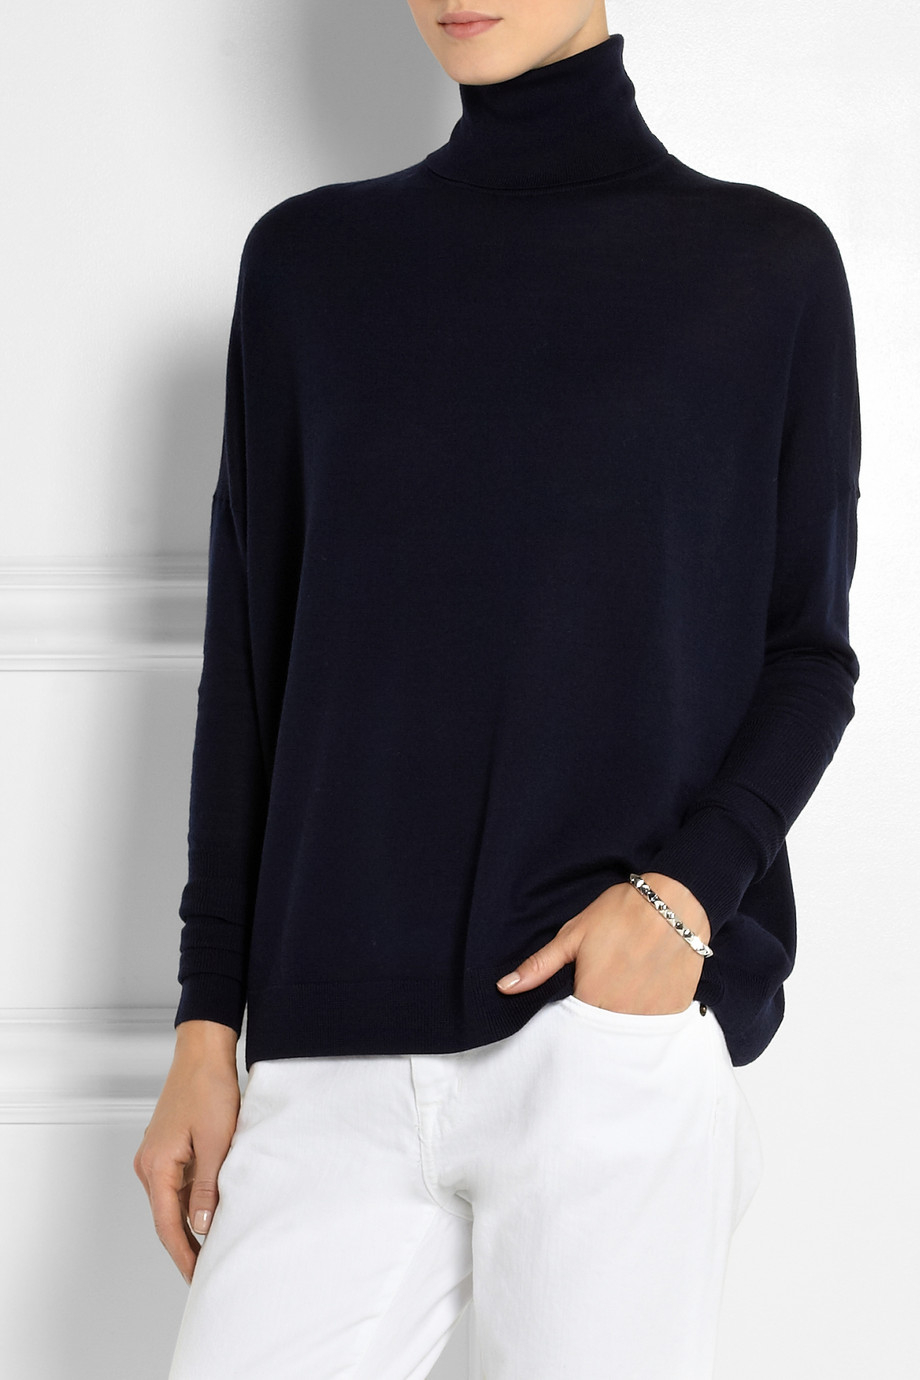 Acne studios Delight Merino Wool Turtleneck Sweater in Blue | Lyst